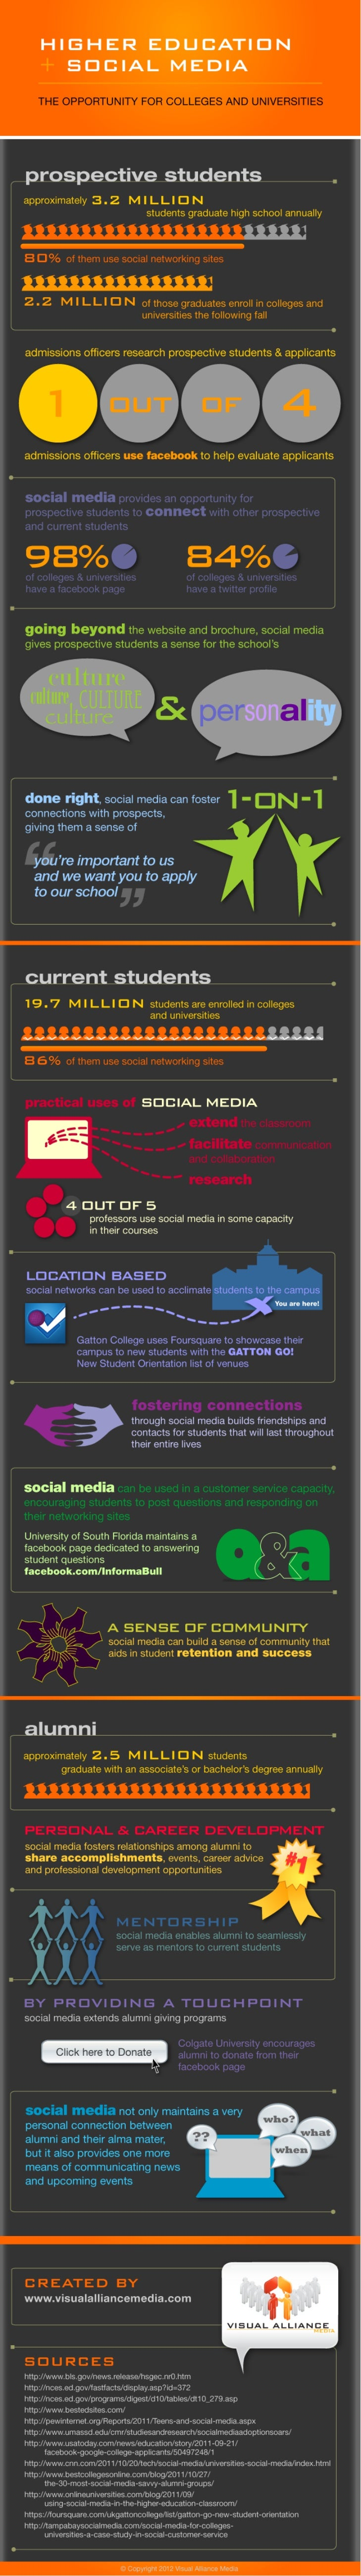 Infographic: Social Media in Higher Education - The Opportunity for Colleges & Universities